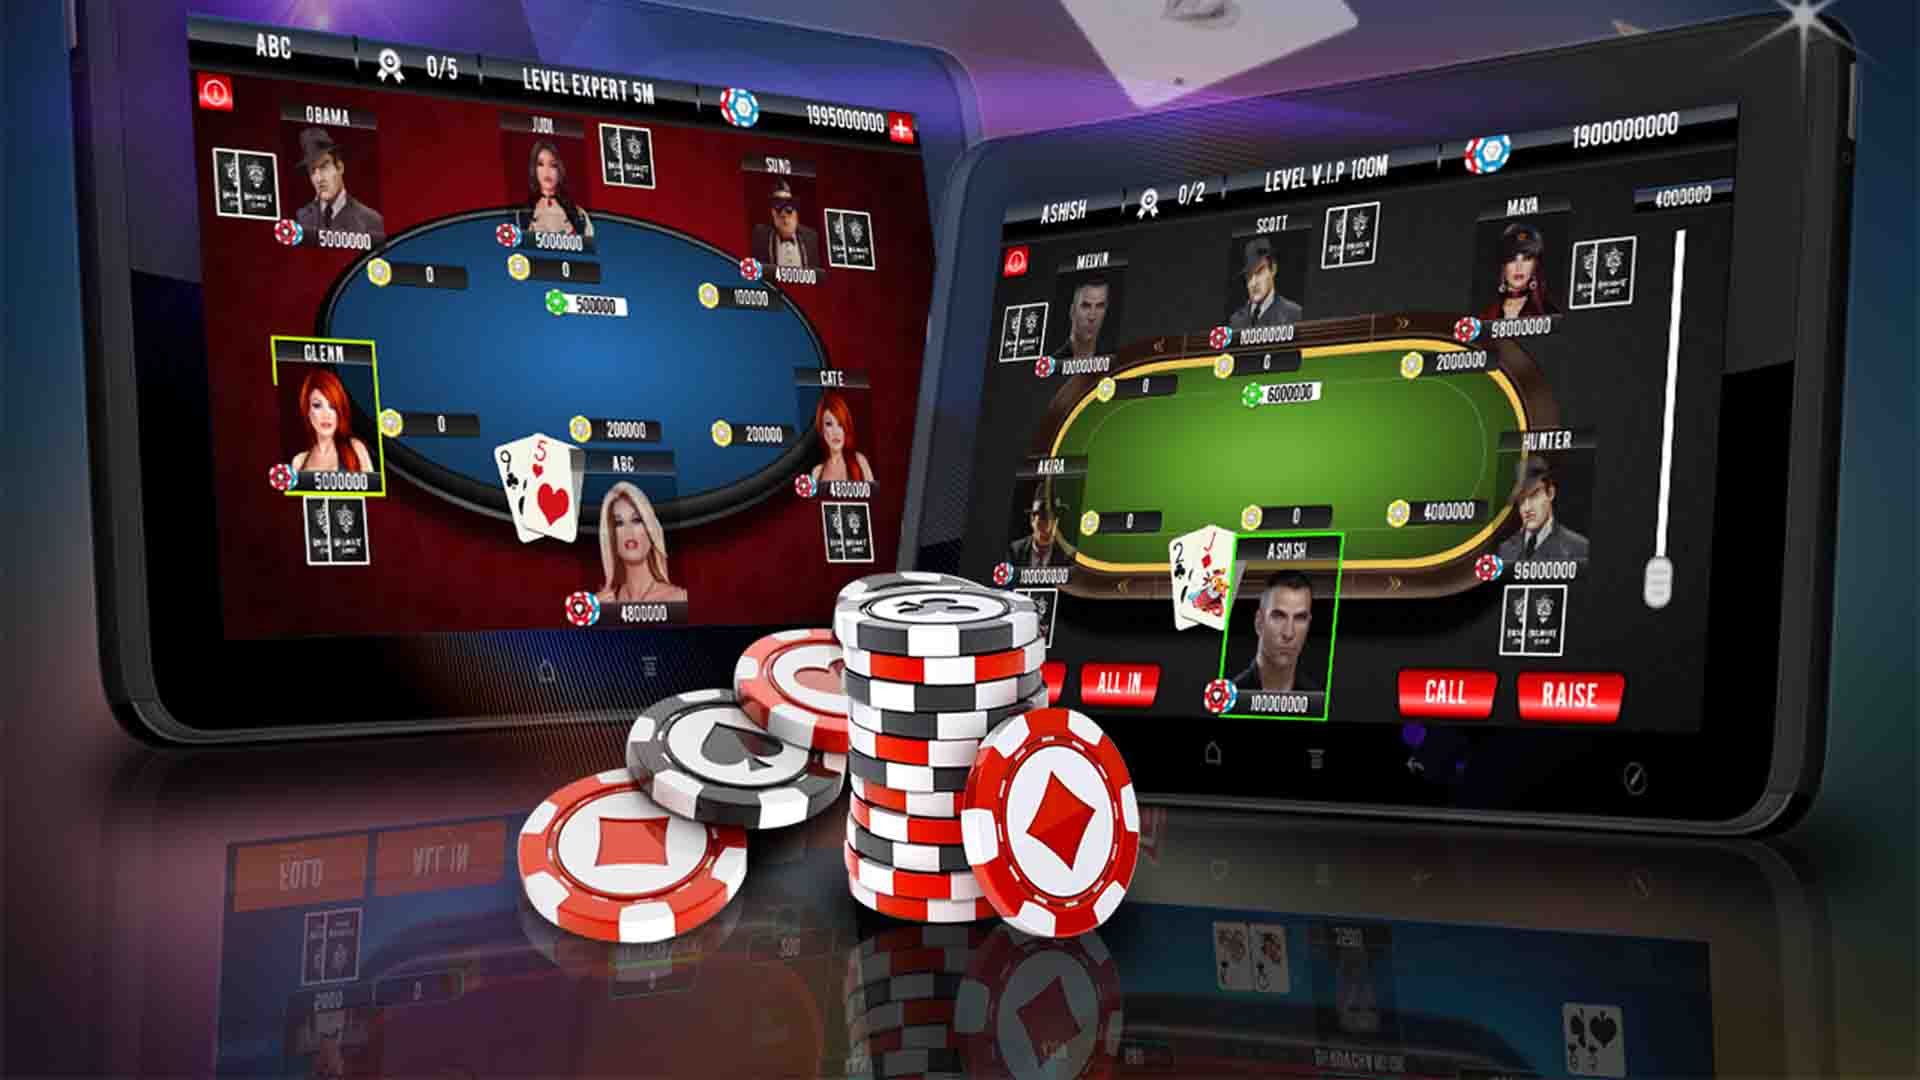 What should you look for in a web-based gambling establishment